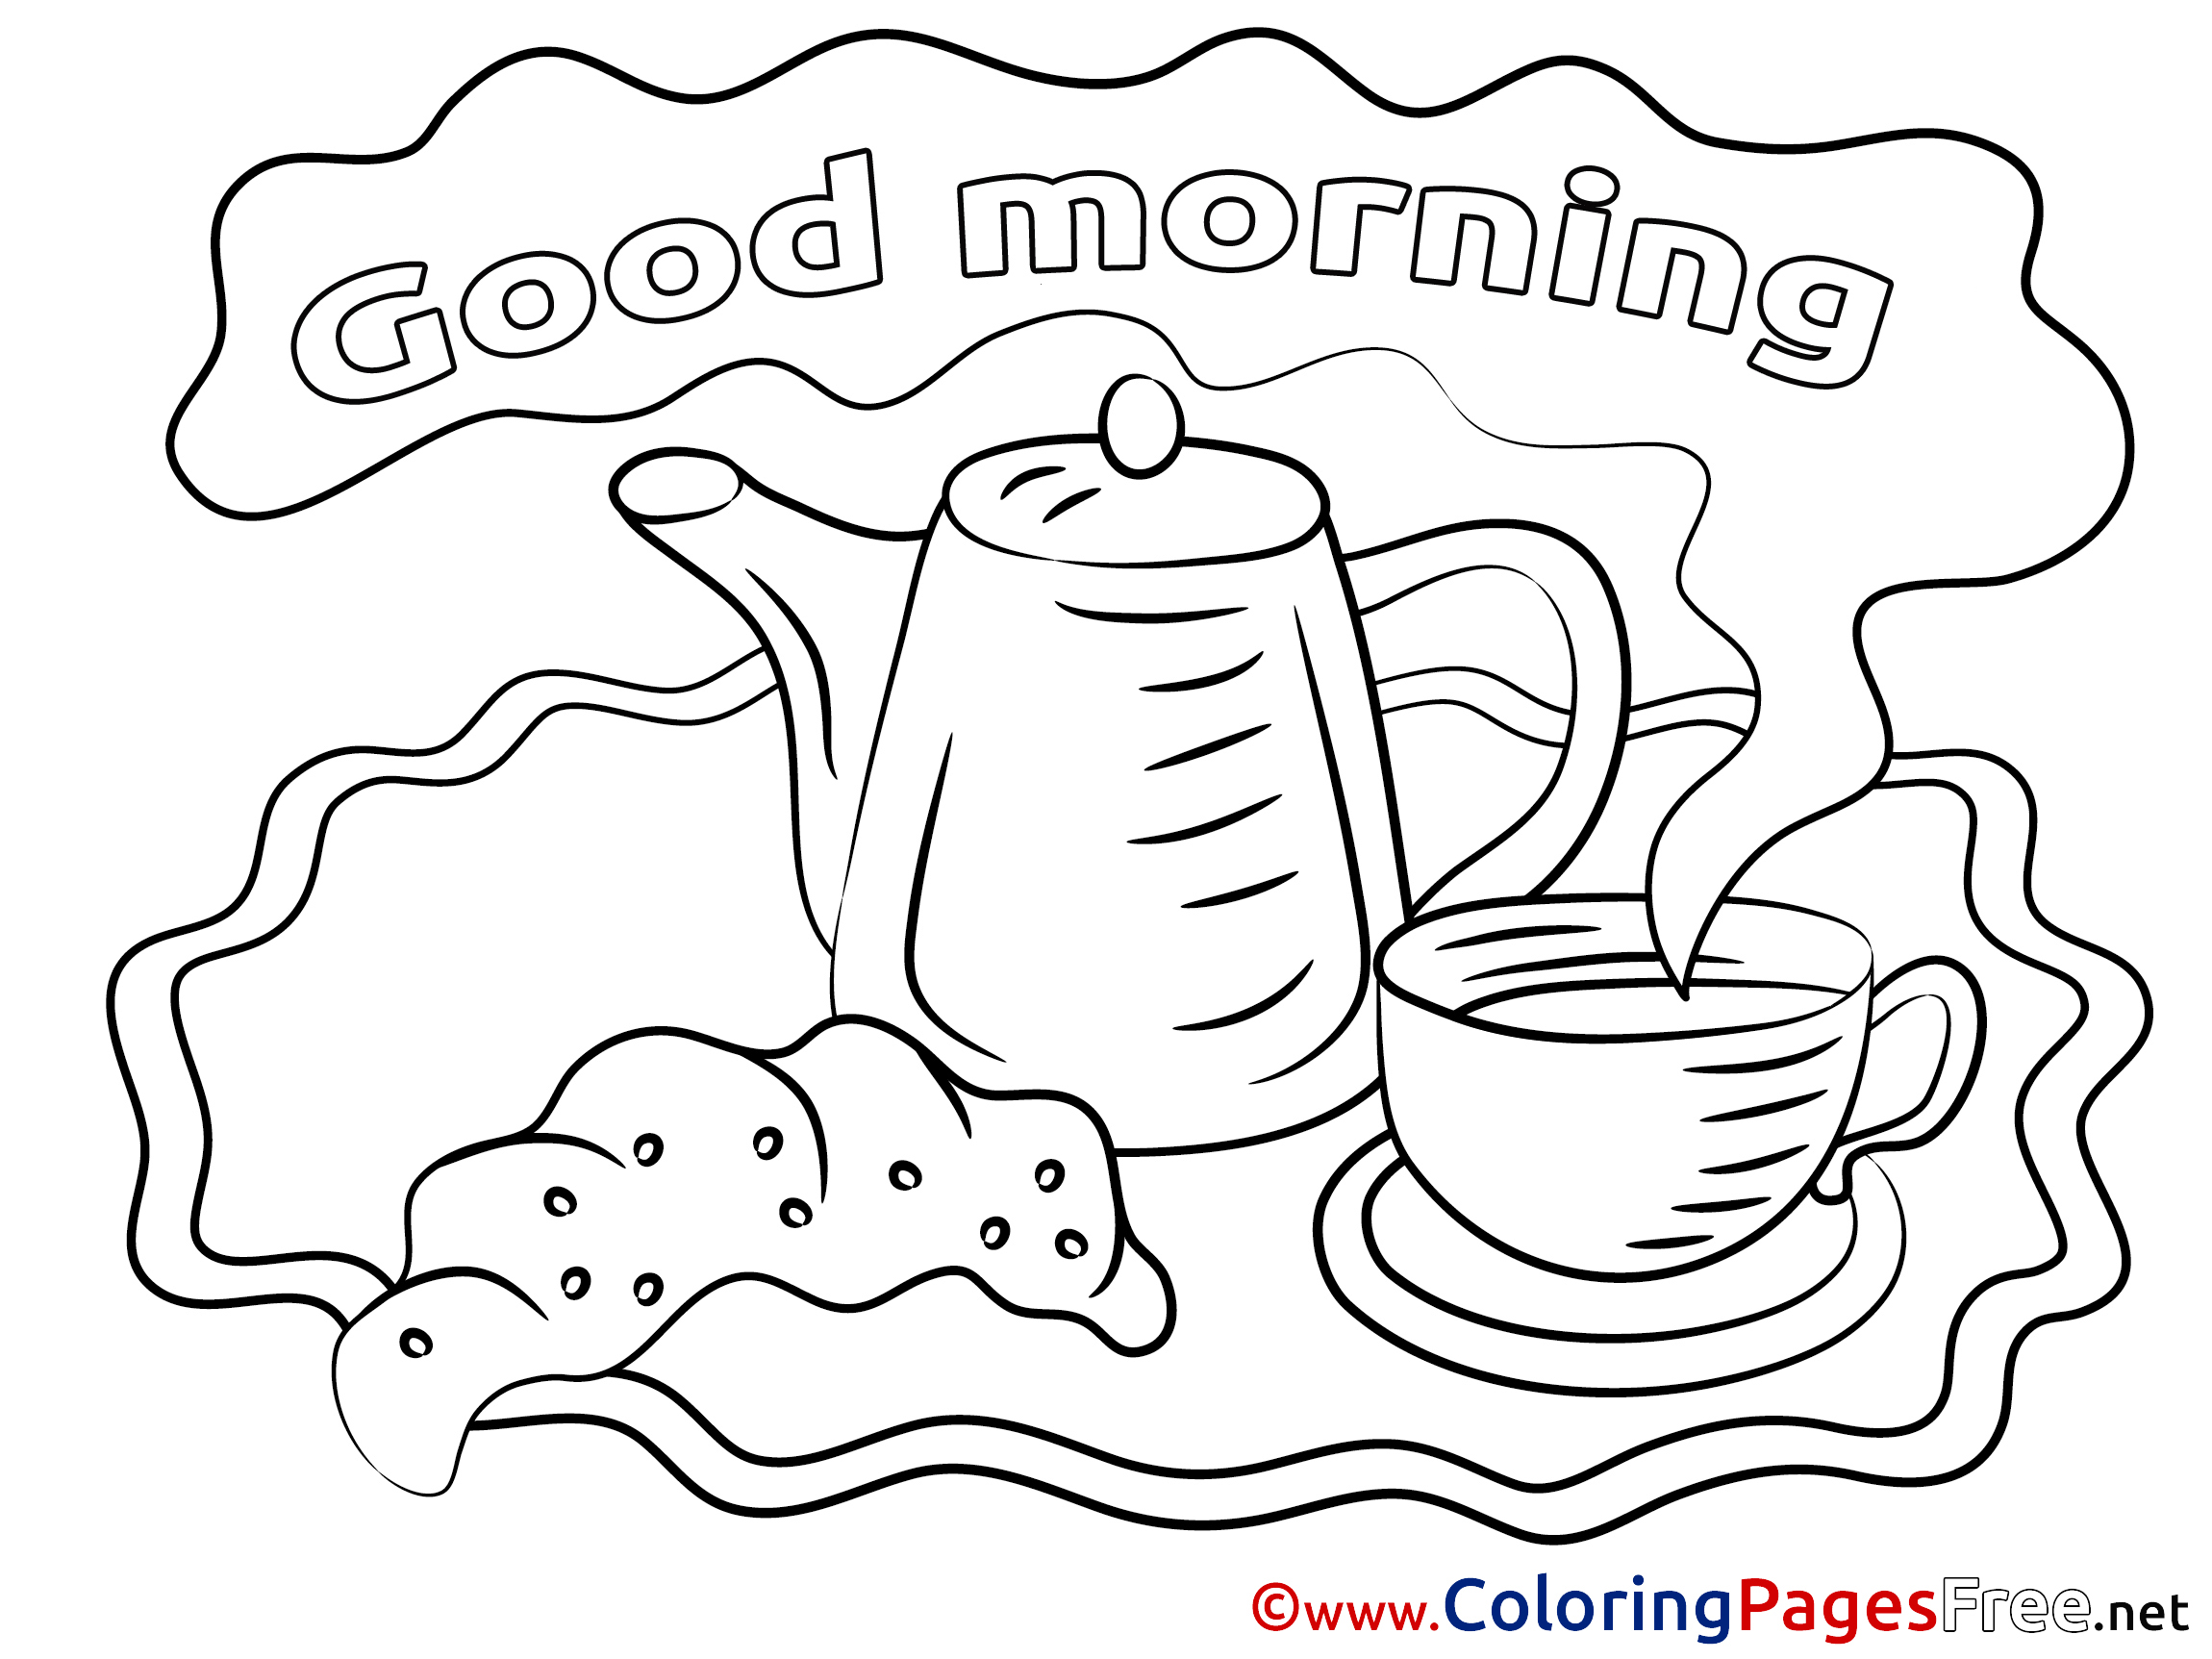 Good Morning Coloring Pages At Getdrawings